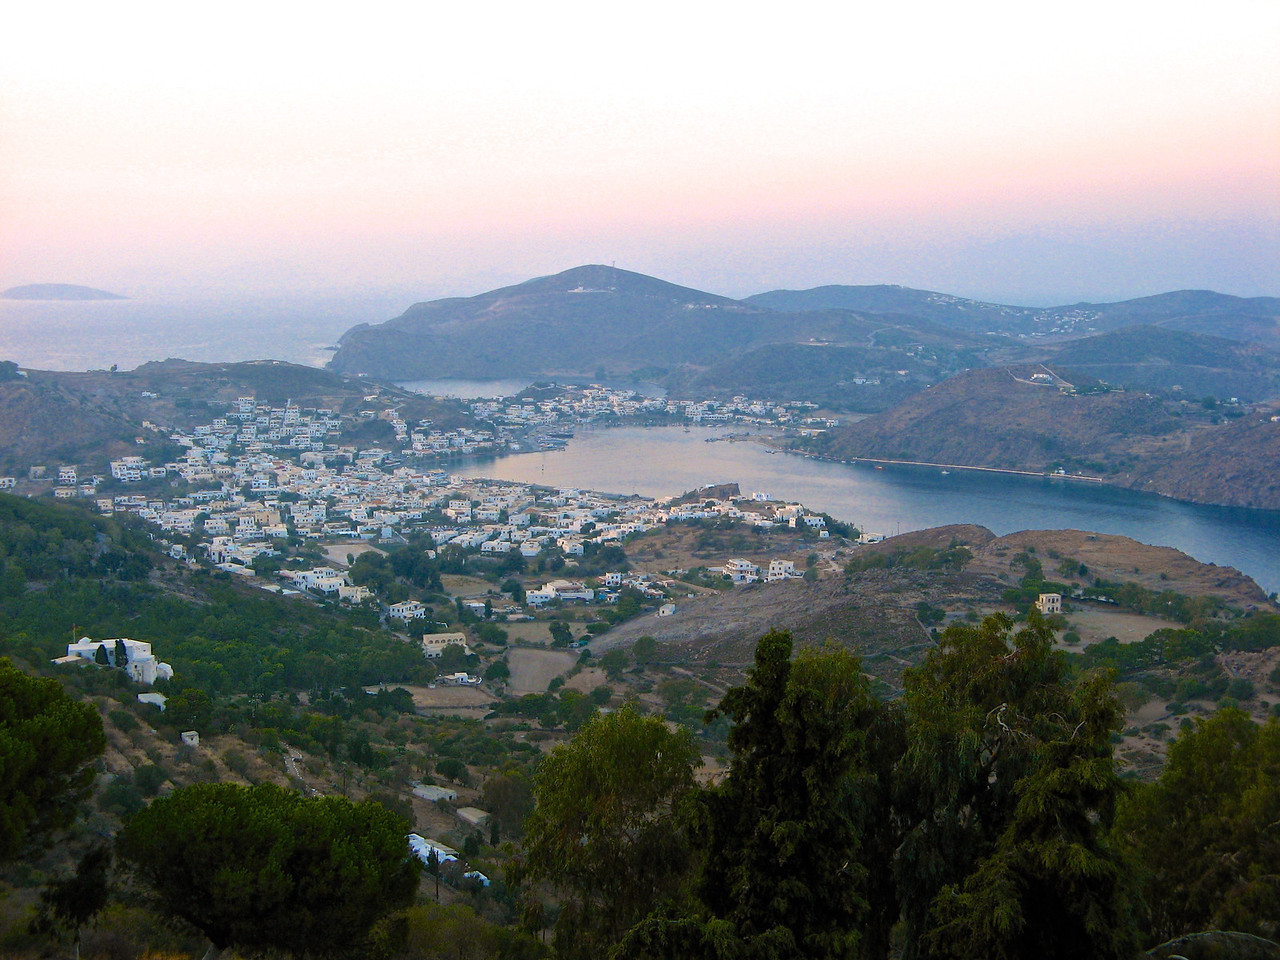 A view of Skala from Chora on the hill.